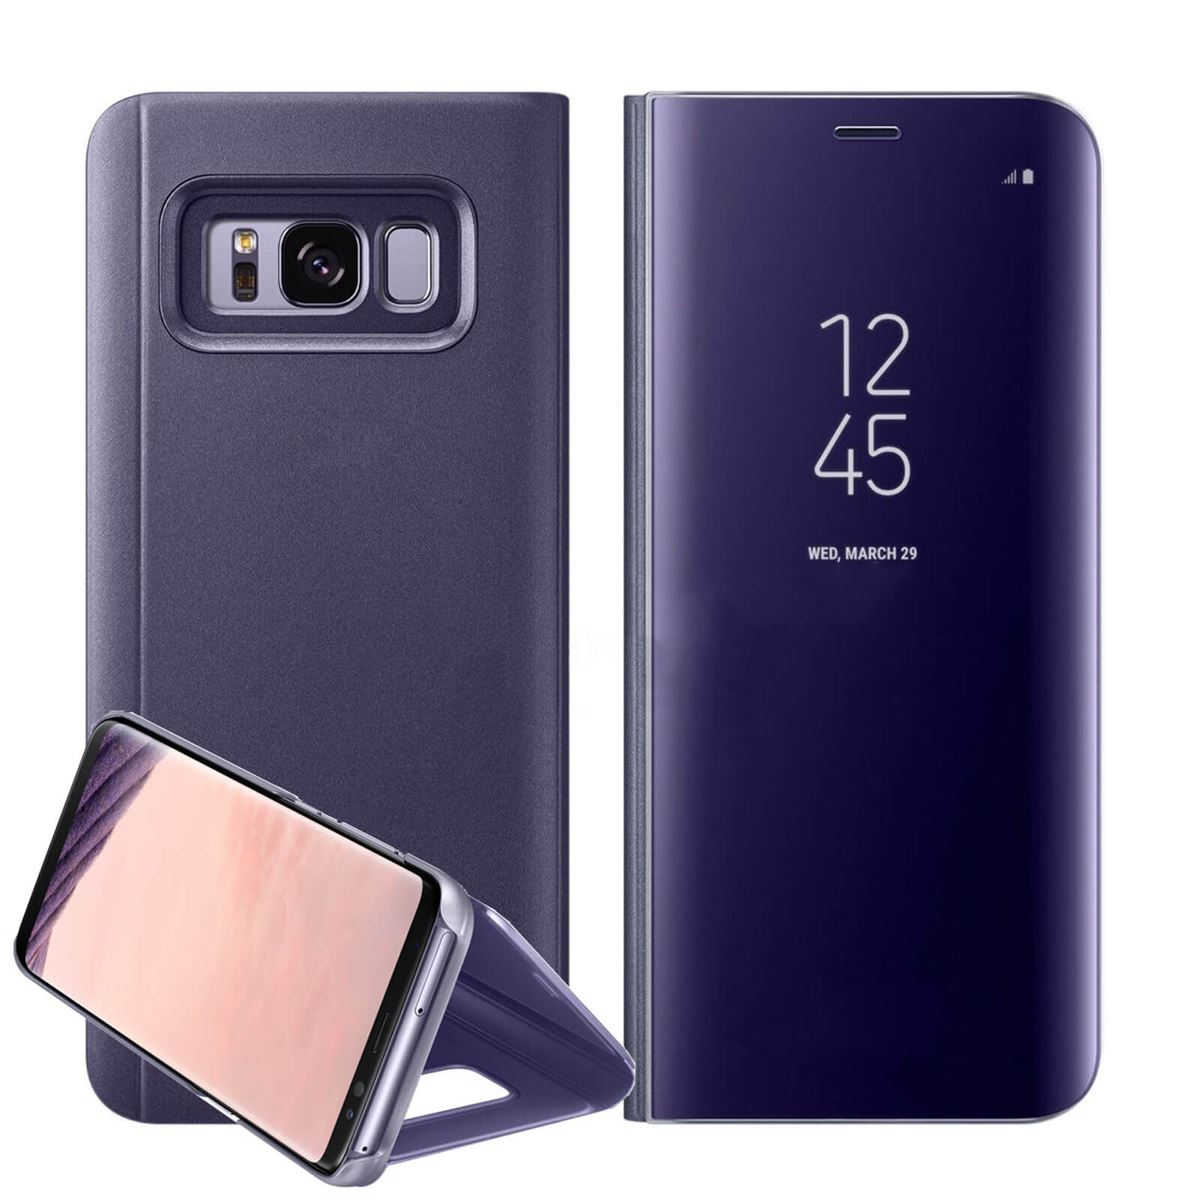 New-Samsung-Galaxy-S10-S9-S8-Smart-View-Mirror-Leather-Flip-Stand-Case-Cover thumbnail 72